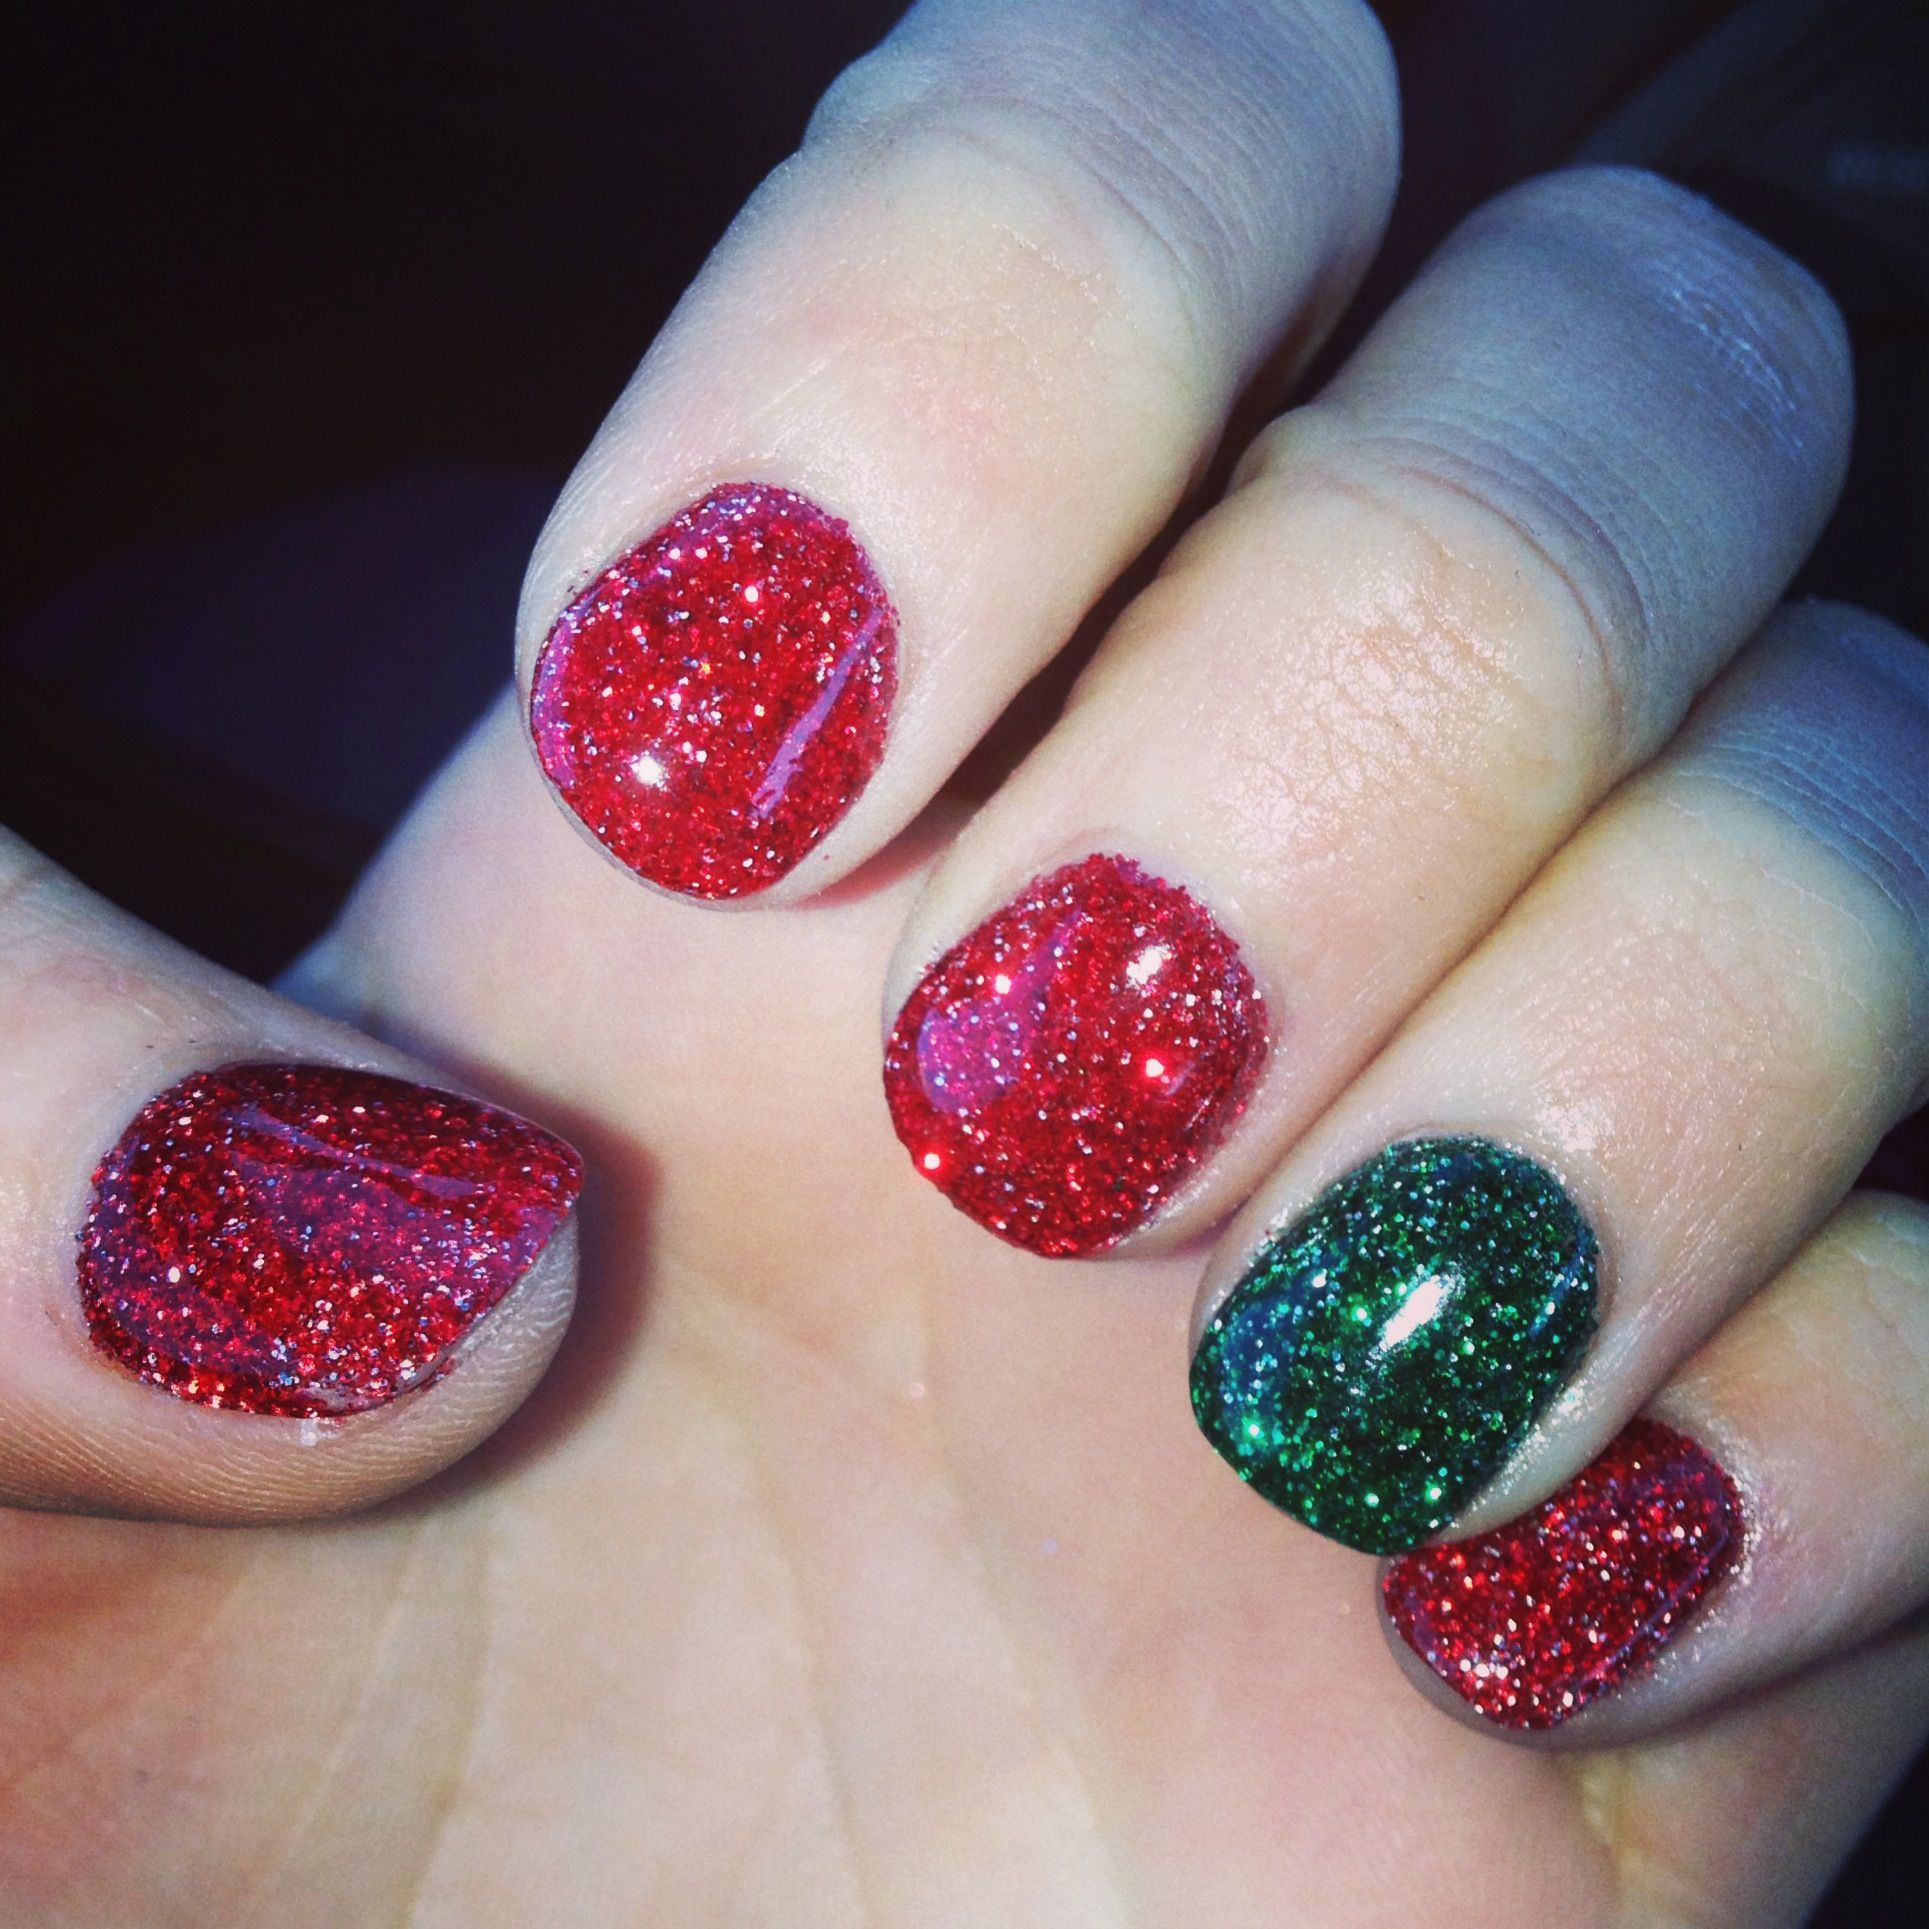 My Christmas nails. SNS powder gel. No UV light !! | Pretty Princess ...